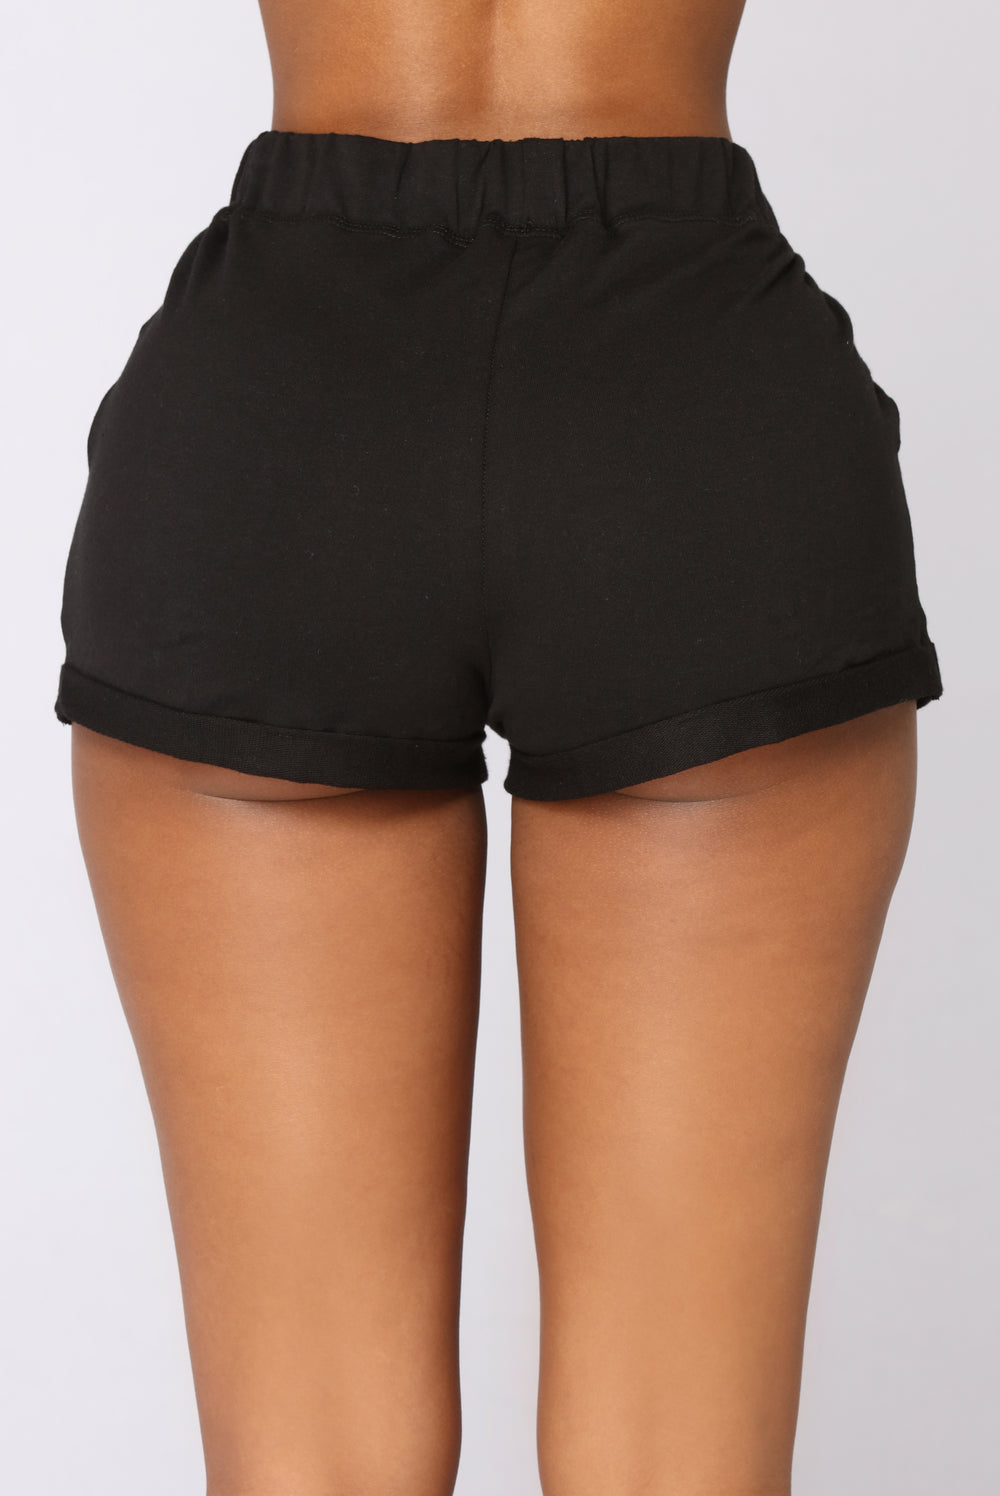 Kassidy Roll Up Shorts - Black